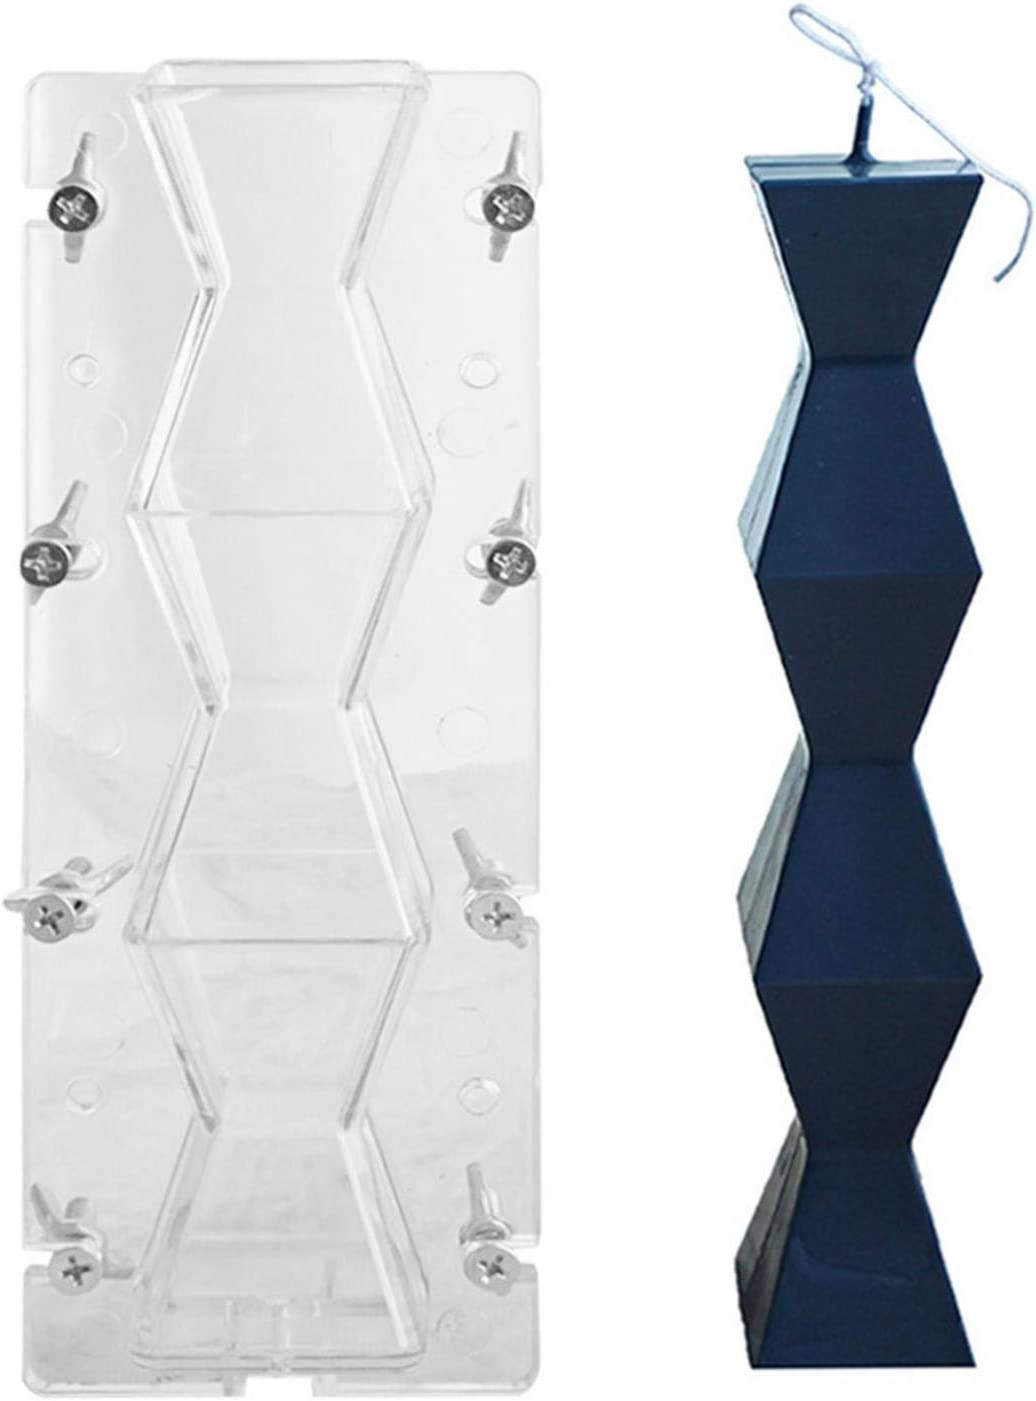 Kijomoza Endless Column Direct sale of manufacturer Candle At the price Plastic Hexagonal Mold Mo